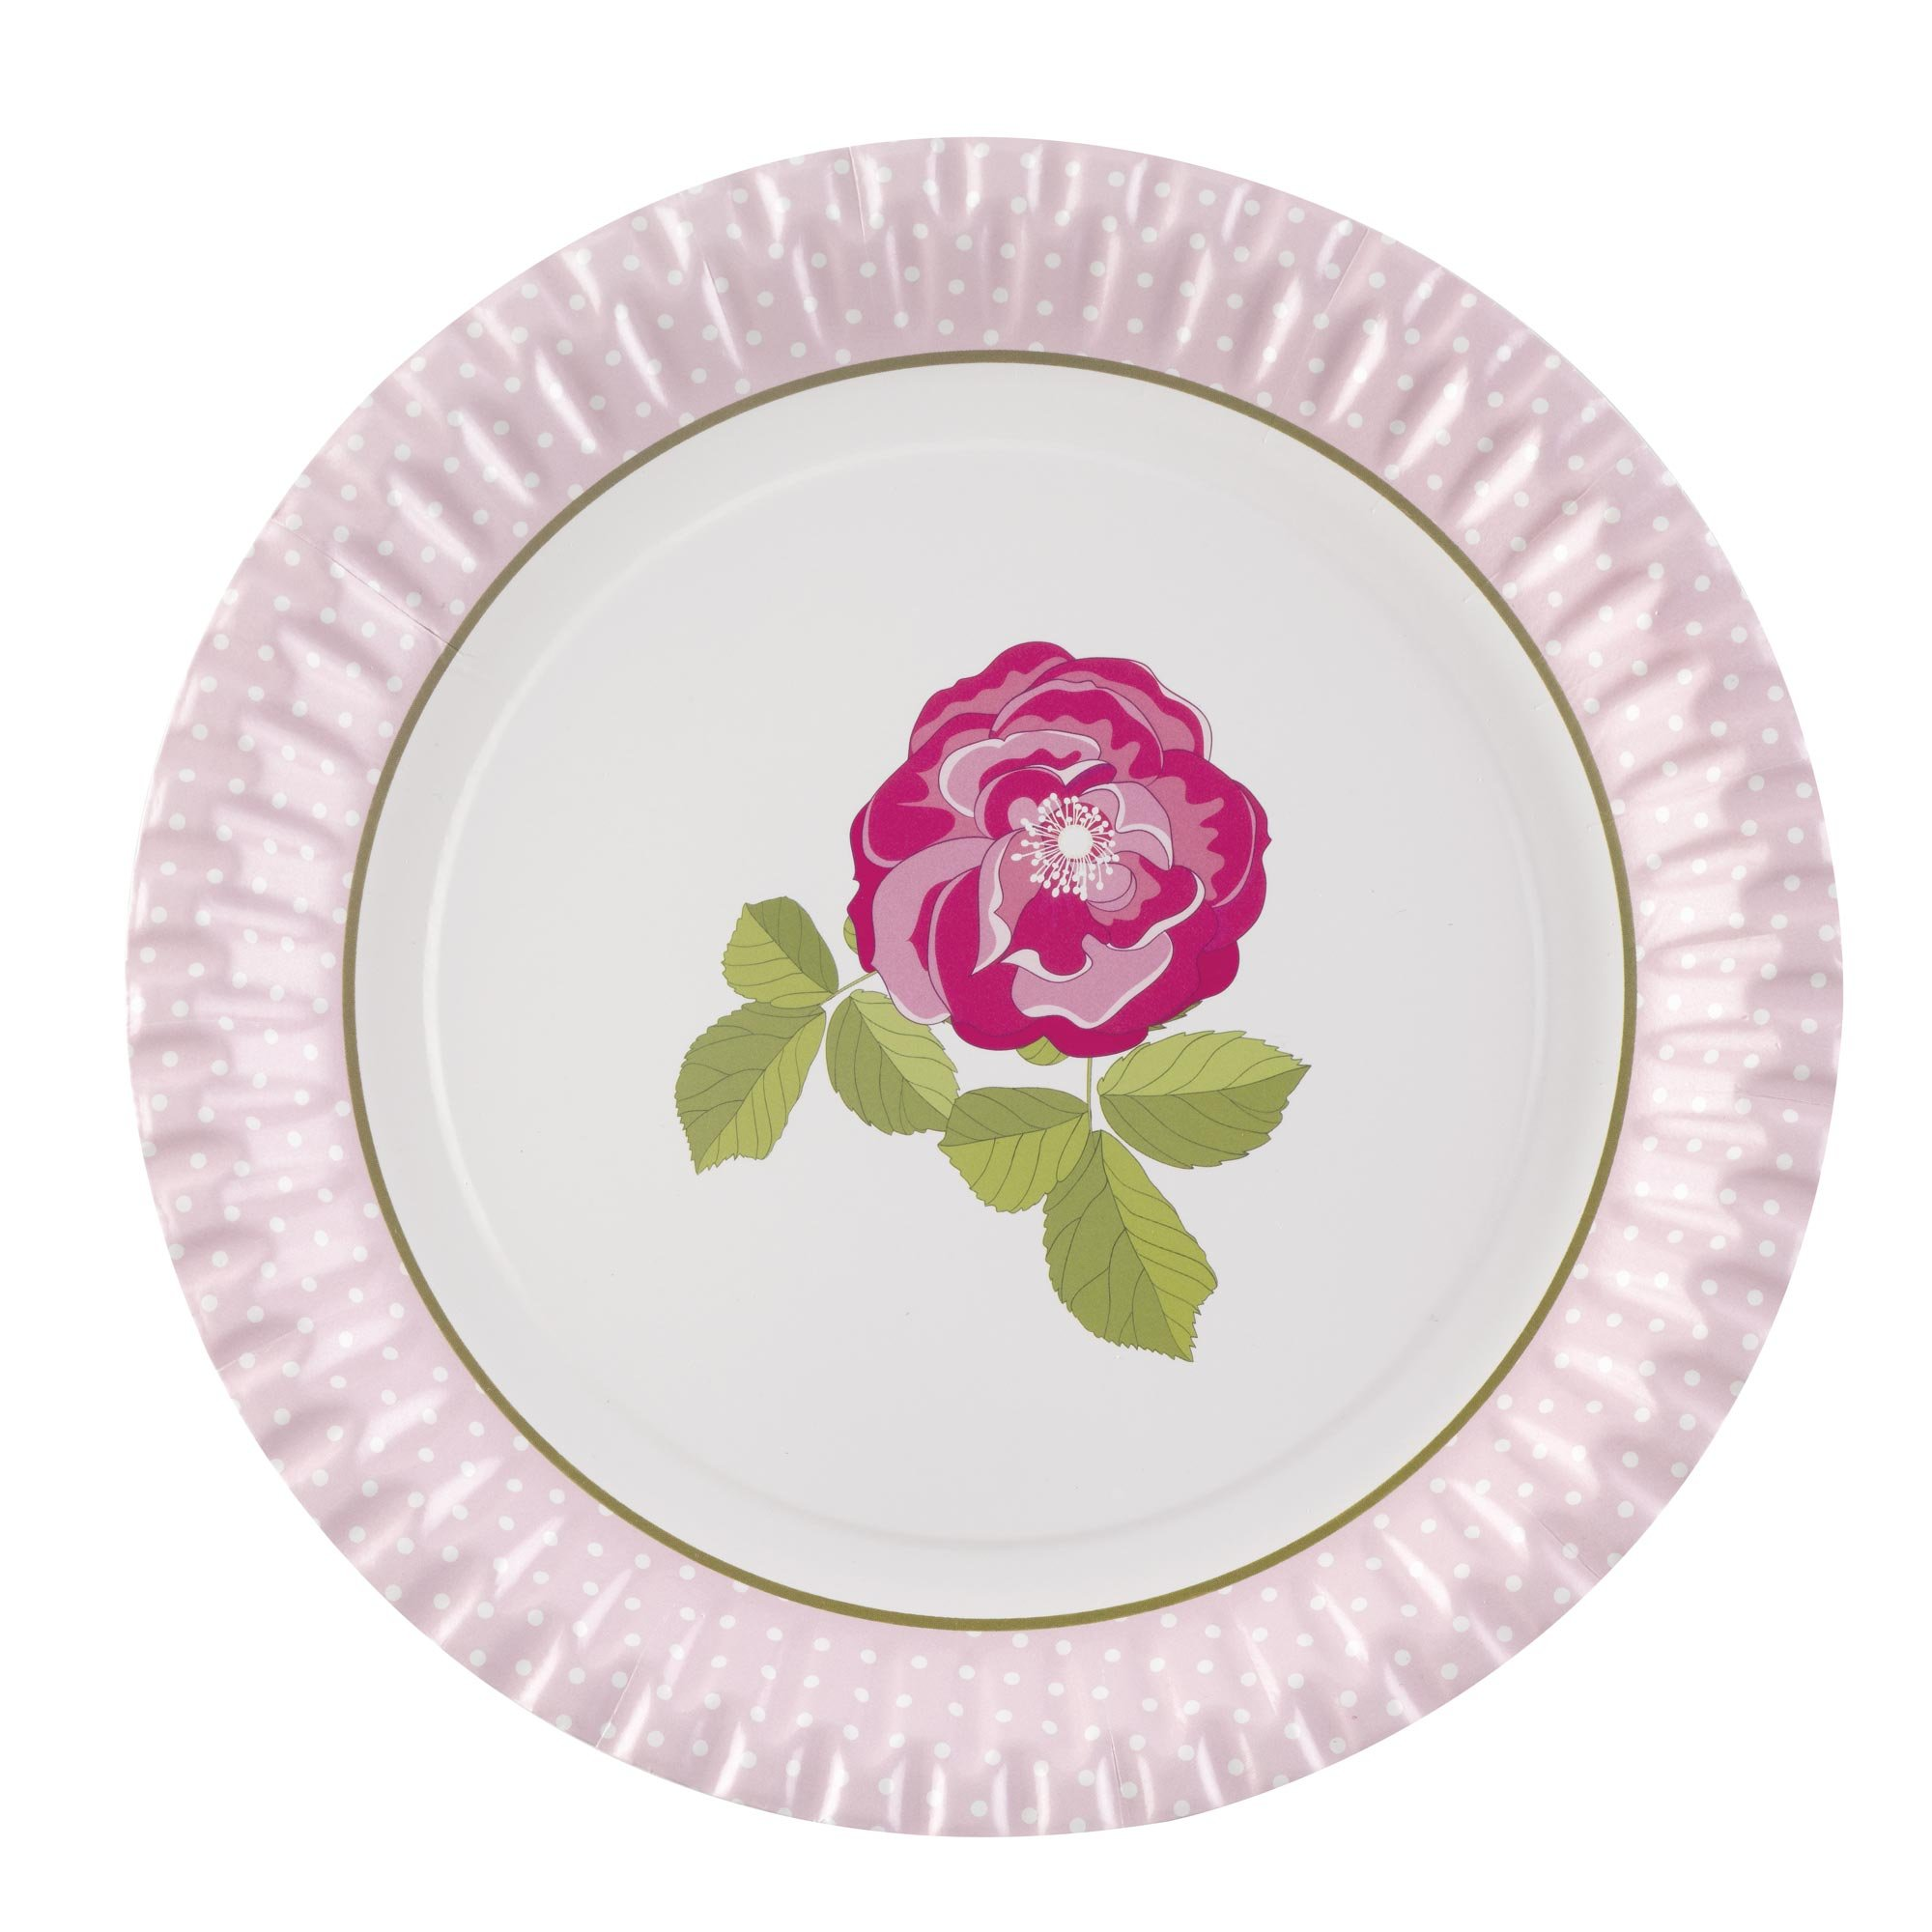 Vintage Rose Party Plates